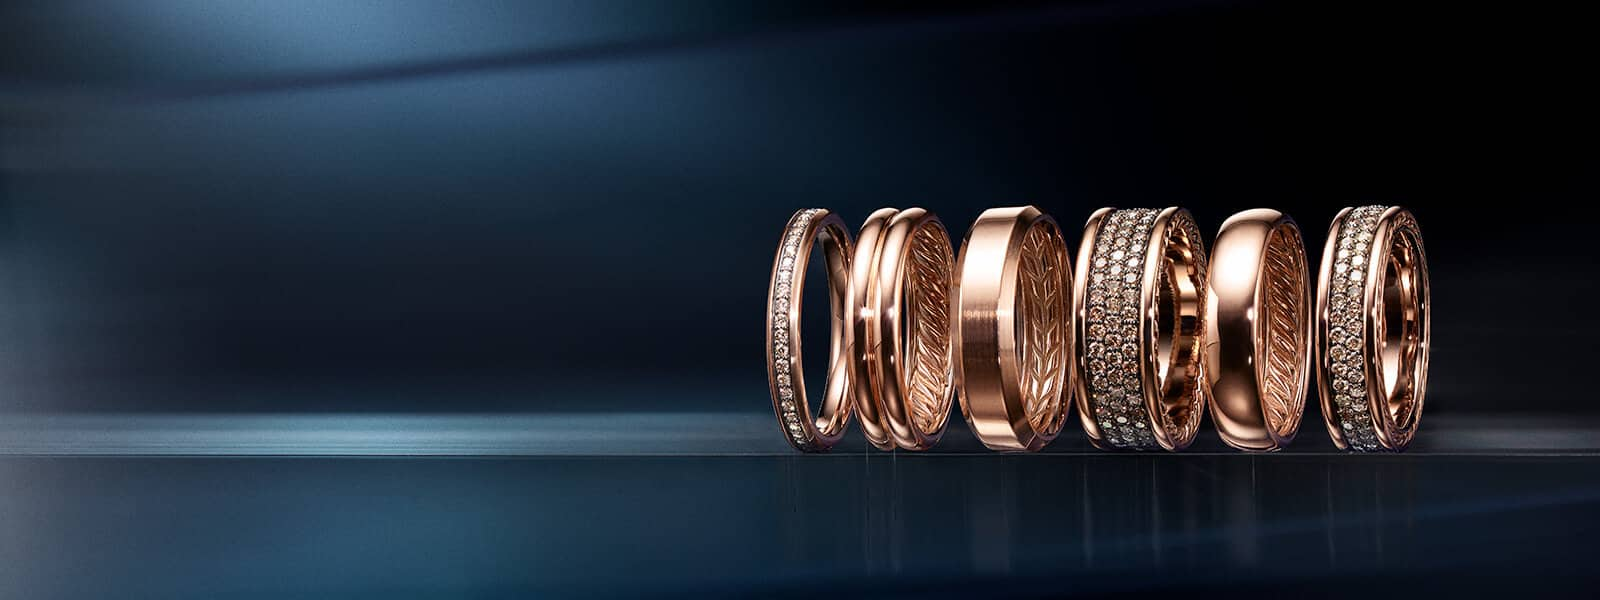 A color photograph shows six David Yurman men's band rings in various widths from the Streamline®, DY Classic and Beveled collections atop a reflective surface with angular, multi-colored reflections of light and jewelry, and in front of a multi-colored background. The rings are shot to appear as if they're moving. The DY Classic and Beveled bands are crafted from 18K rose gold. All of the Streamline® bands are crafted from 18K rose gold with pavé cognac diamonds.